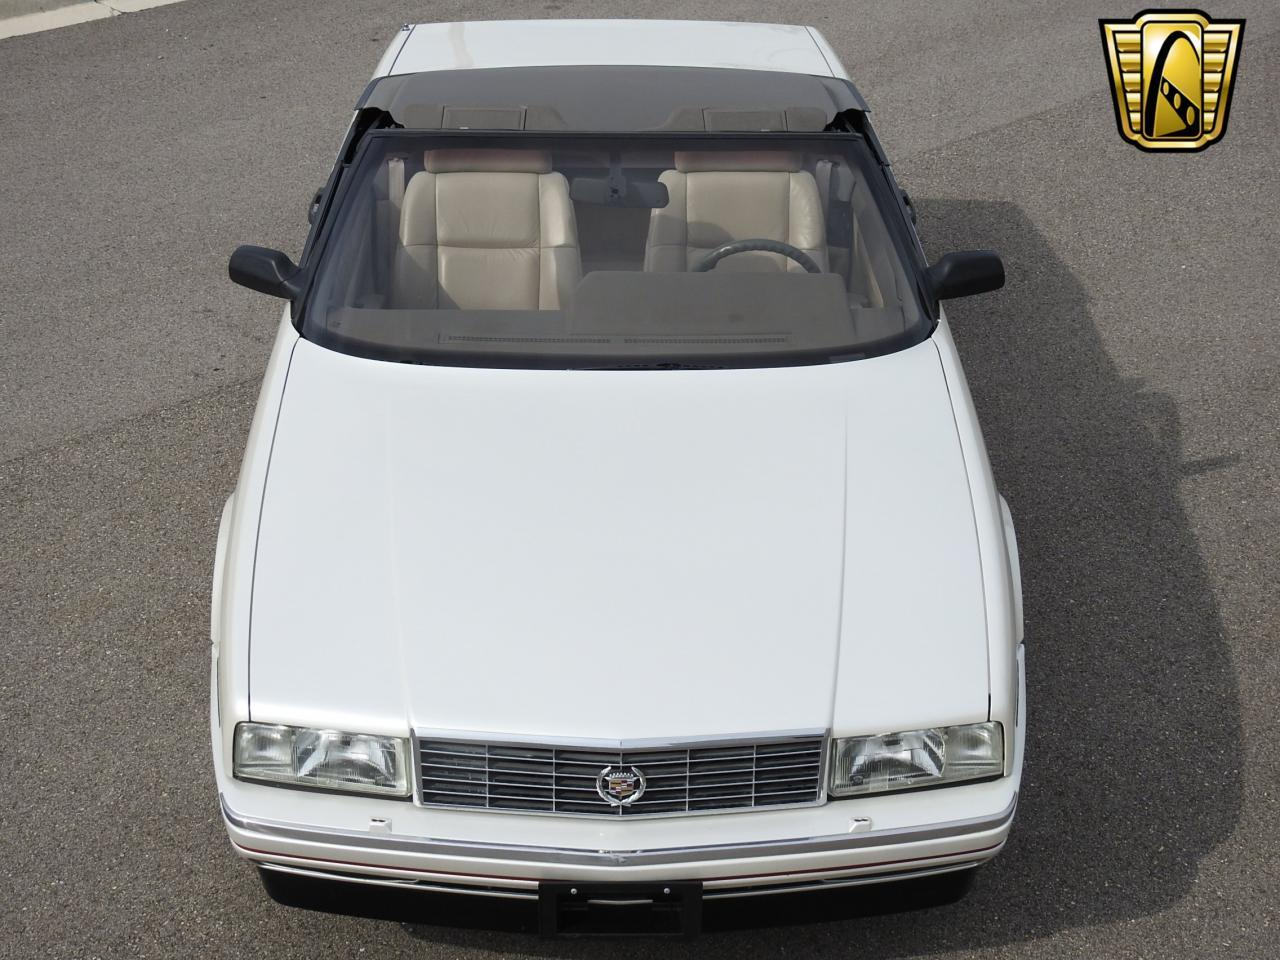 Large Picture of '93 Cadillac Allante - $10,995.00 - LF3Y